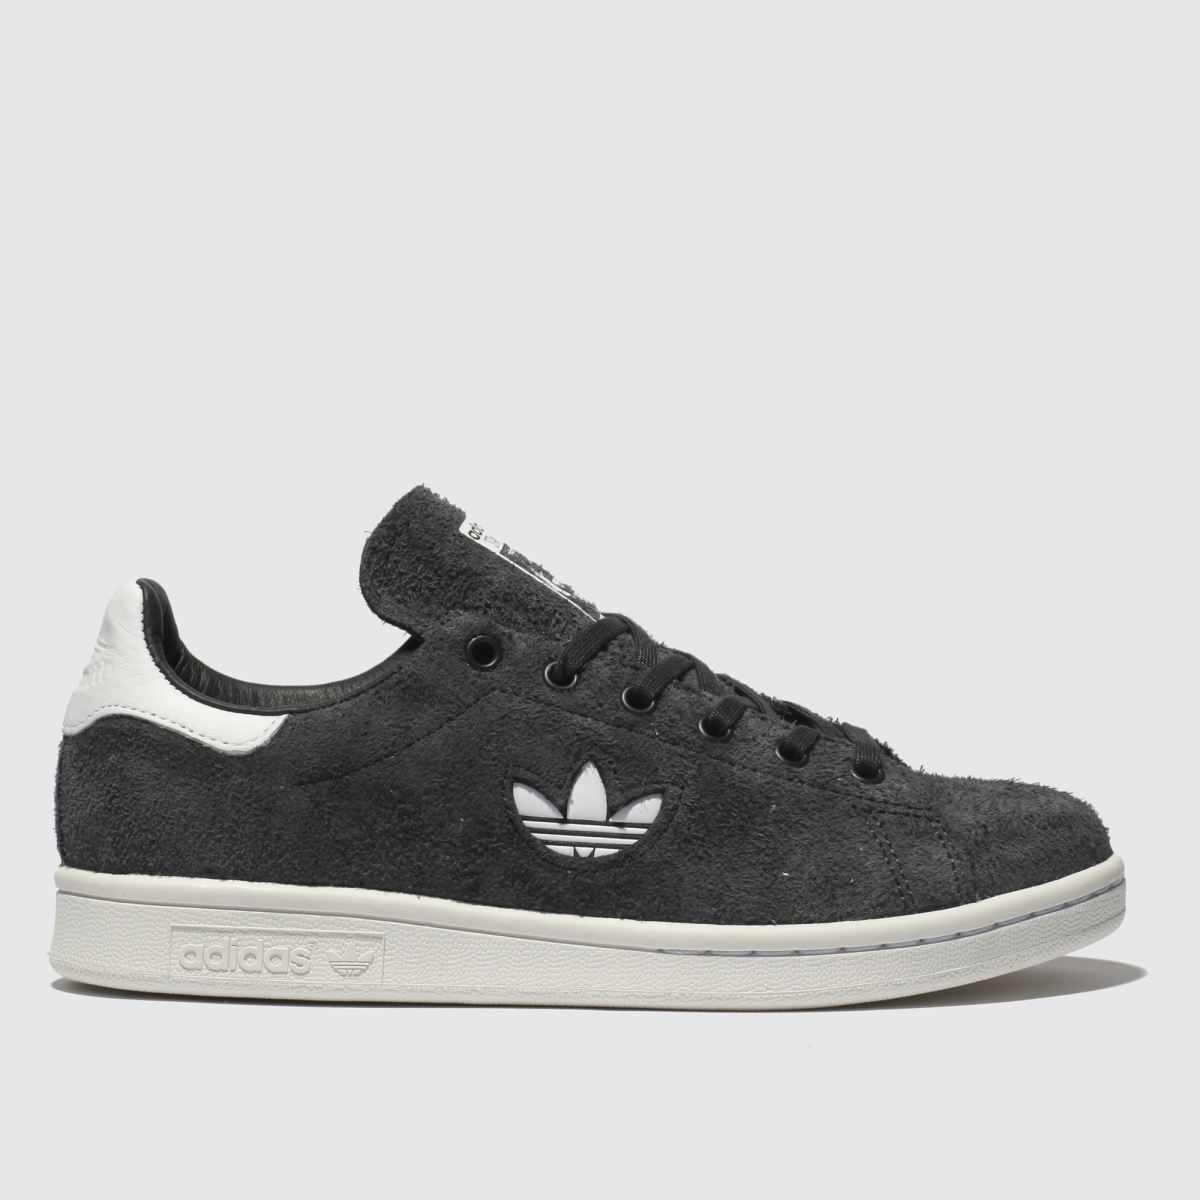 Adidas Dark Grey Stan Smith Suede Trainers